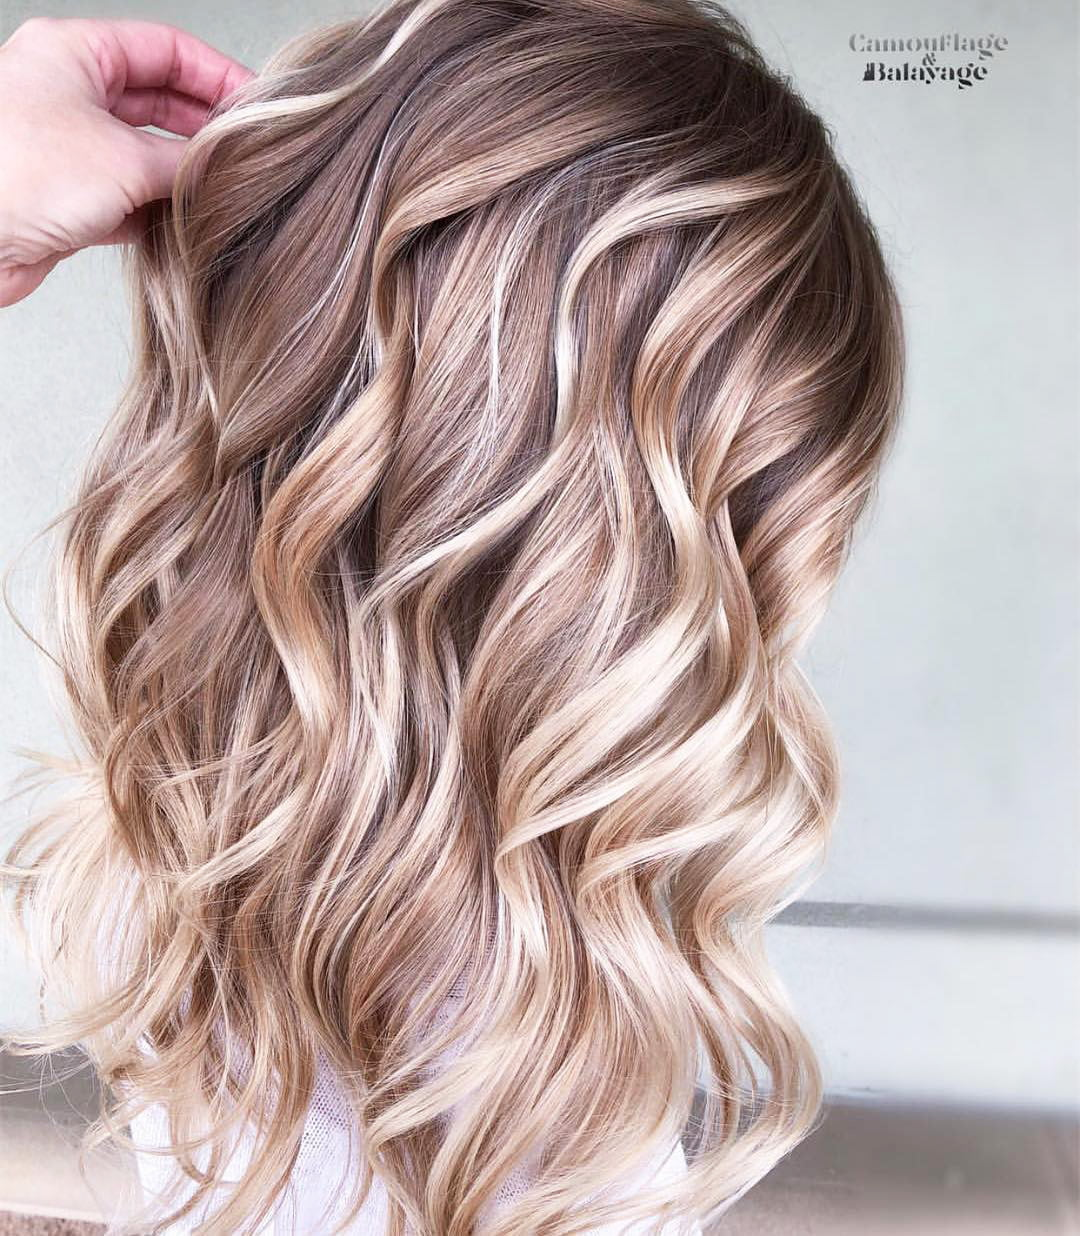 70 Top Hairstyles for Long Thin Hair in 2020 For Women (99)